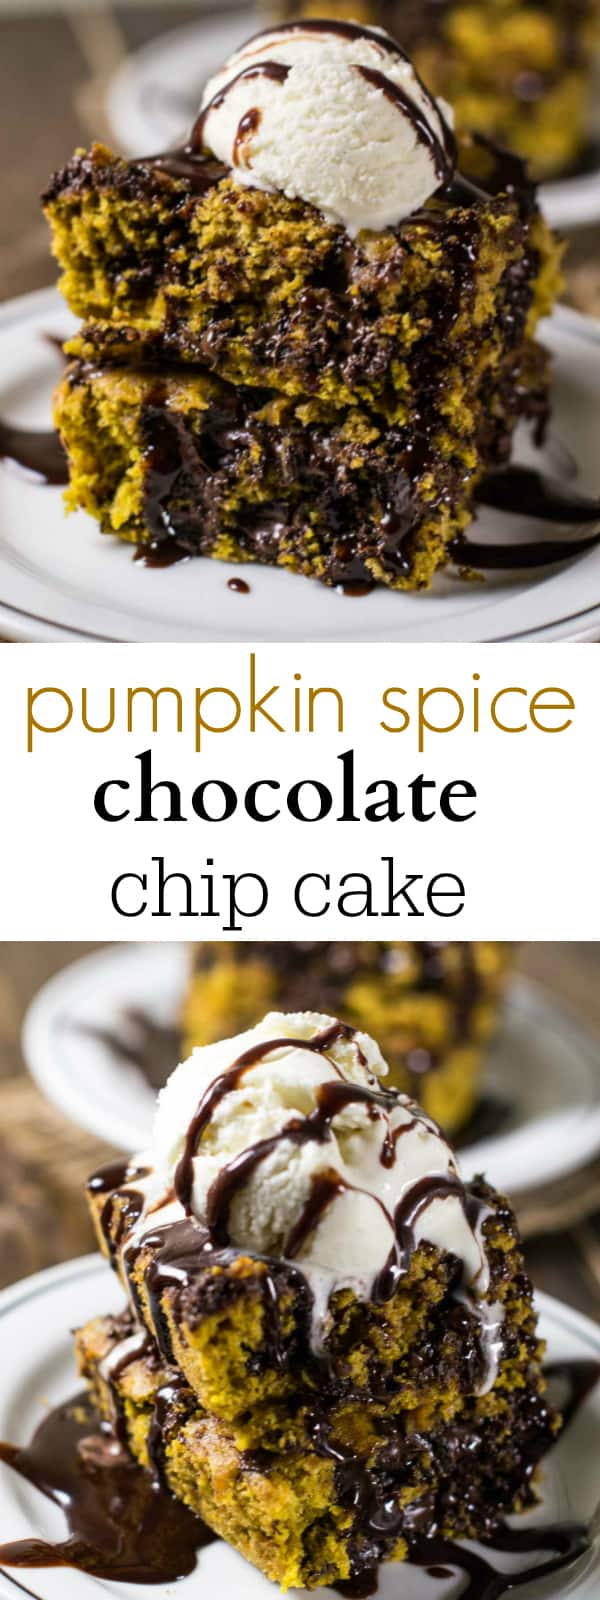 Pumpkin Spice Chocolate Chip Cake - Build Your Bite